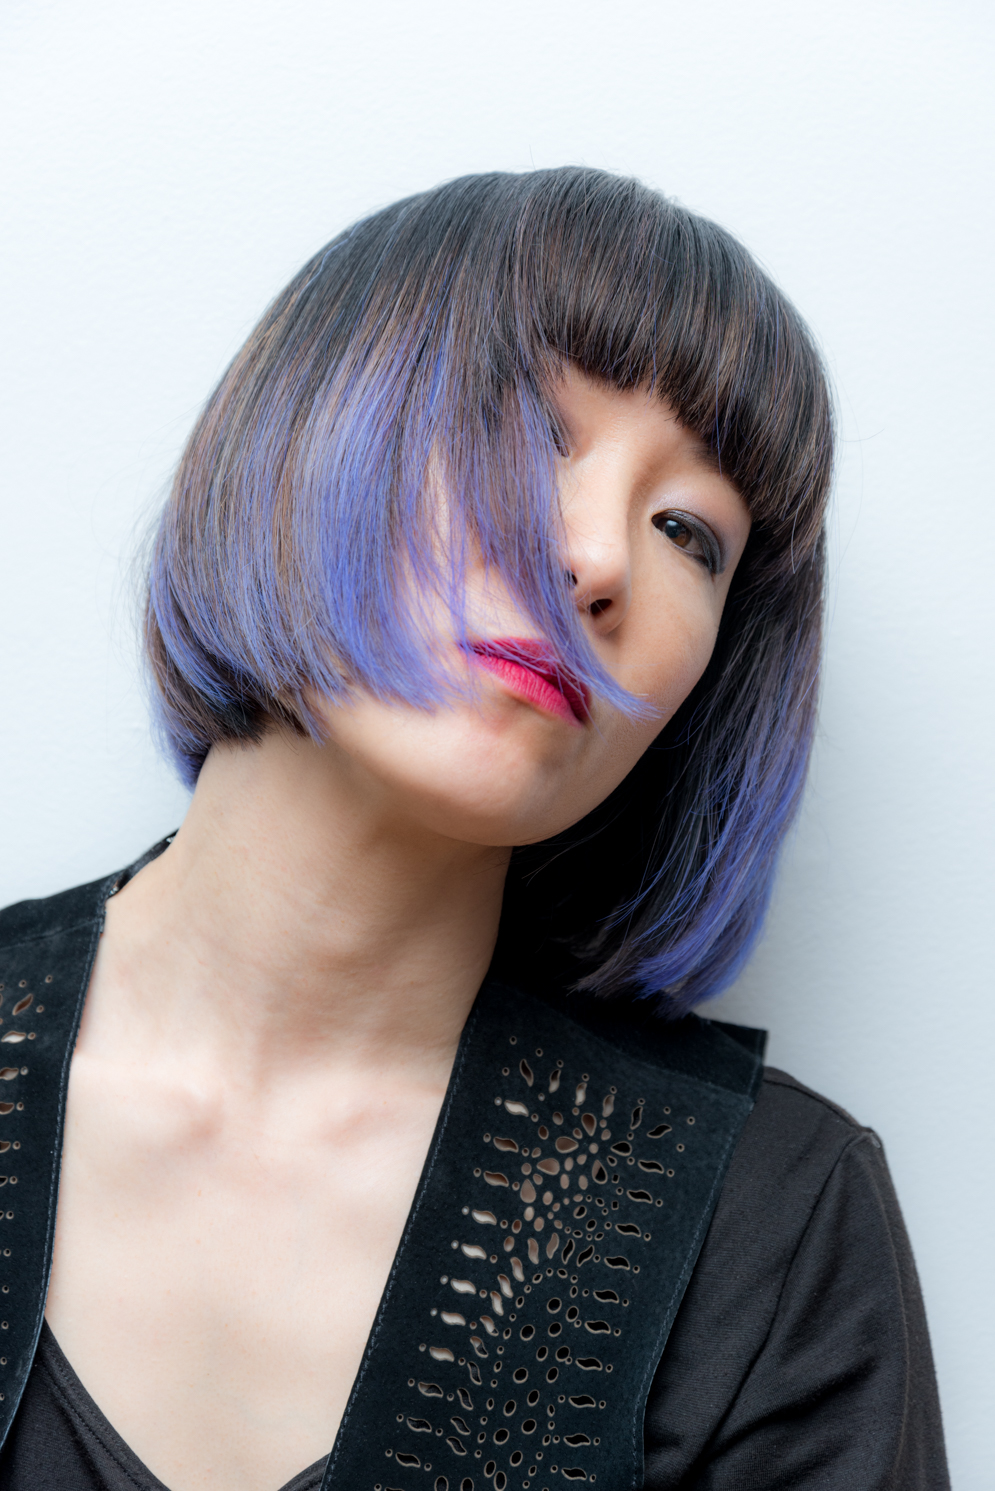 ROCK MAMA NYC LIFESTYLE BLOG - HOW TO COLOR YOUR HAIR PURPLE AT HOME